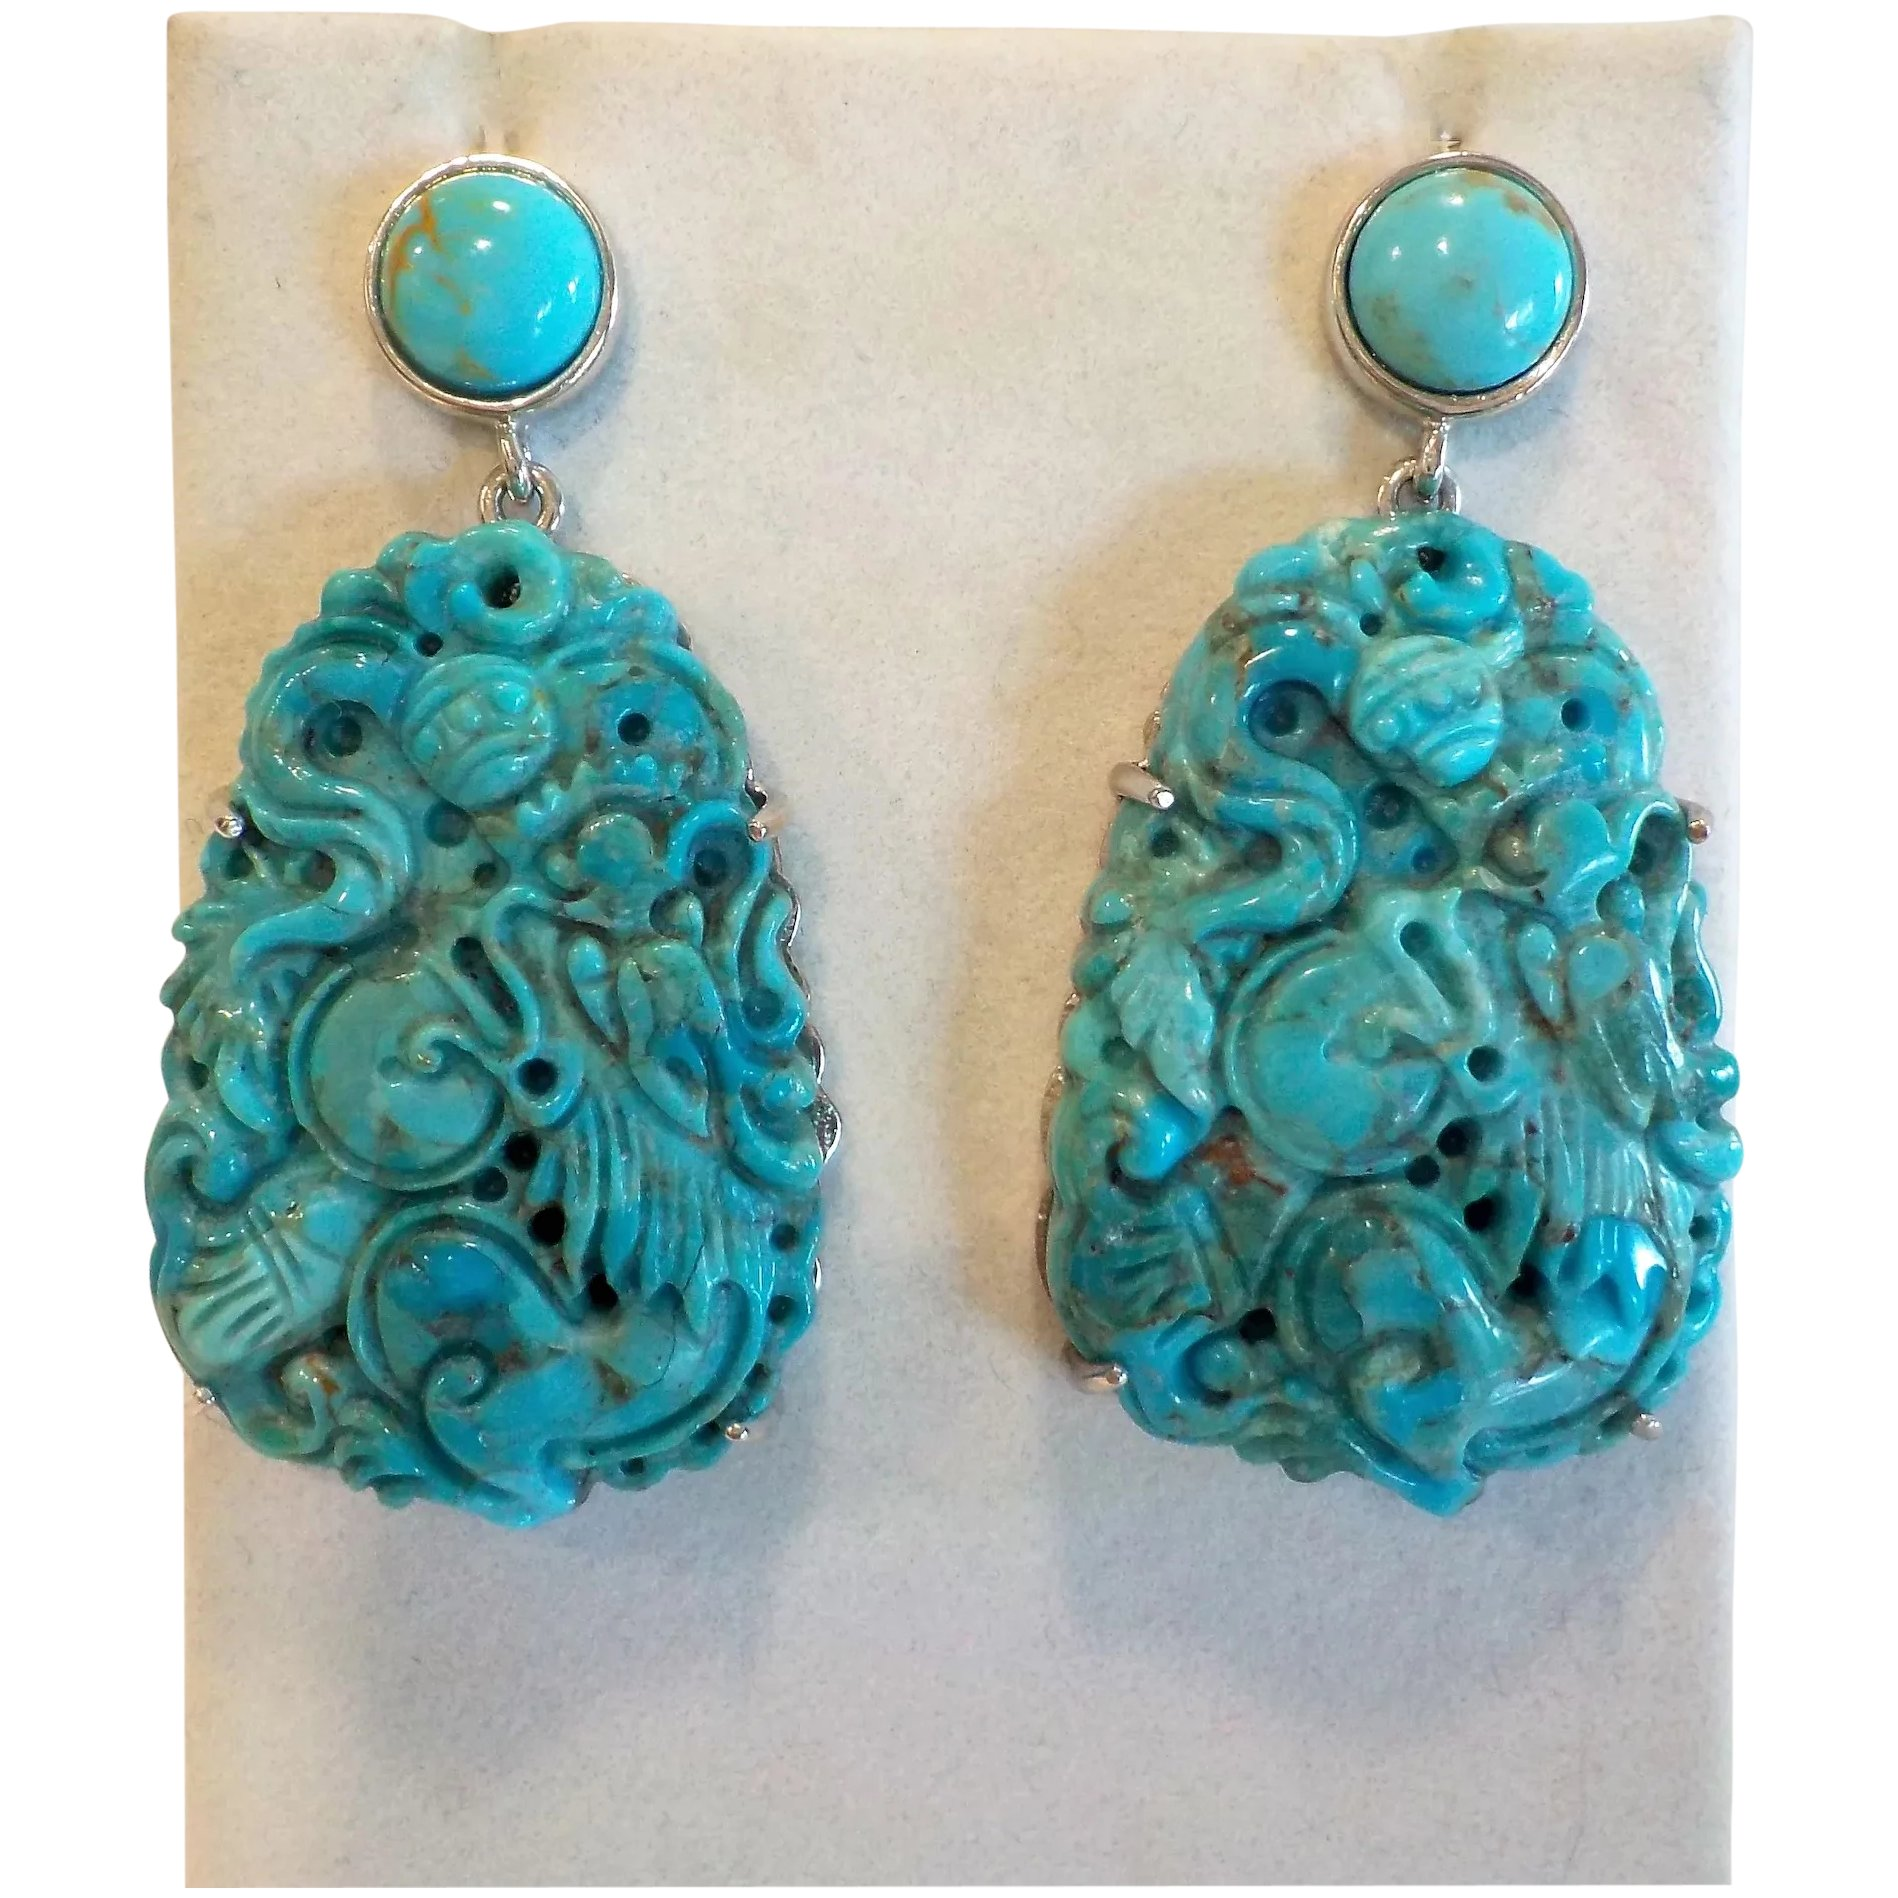 1316 Stunning Turquoise 925 Sterling Silver Earrings